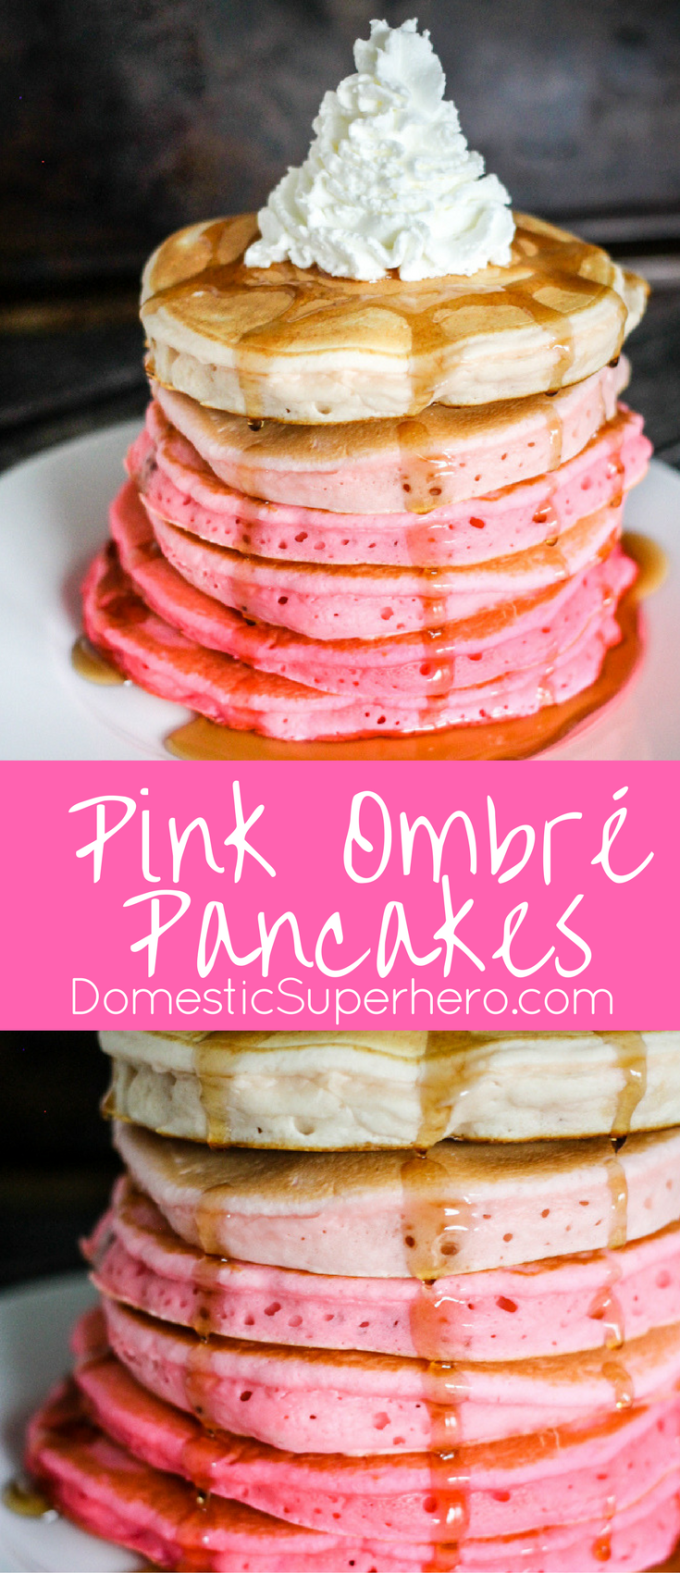 Pink Ombre Pancakes are simple to make and such a pretty breakfast! Serve them for Valentine's Day or any occasion!